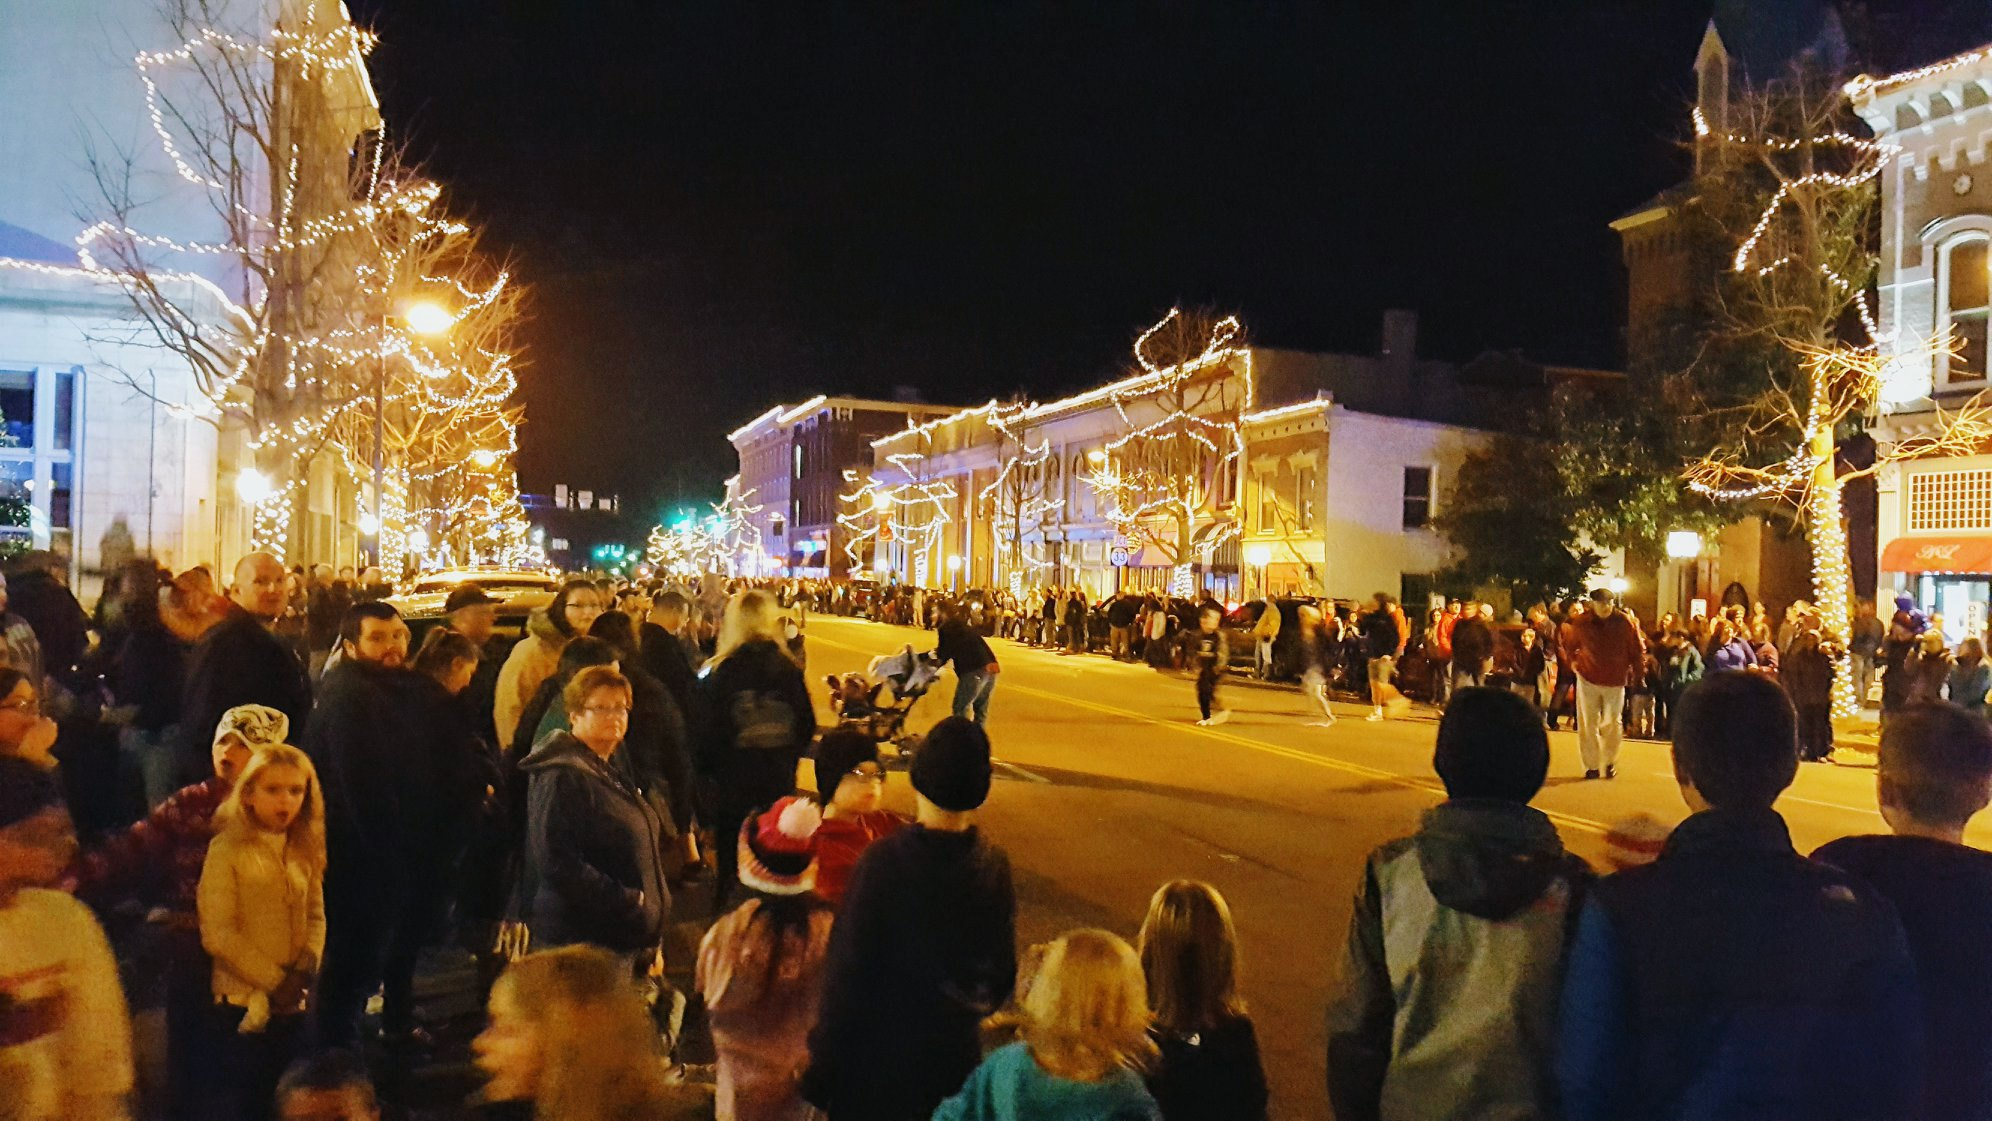 Danville Christmas Parade 2020 2019 Danville Christmas Tree Lighting and Parade   Kentucky Living